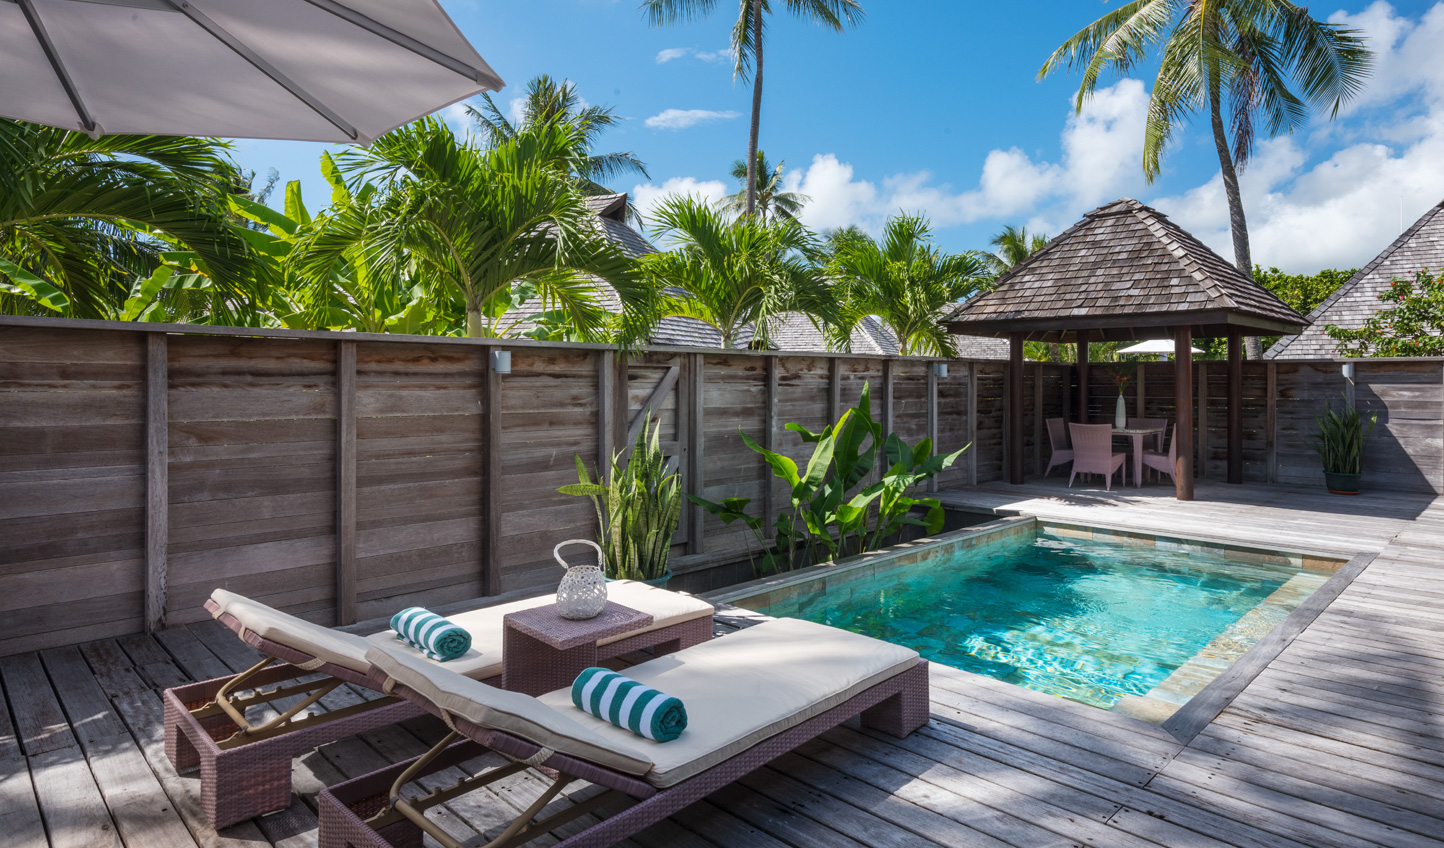 Take a dip in your private plunge pool